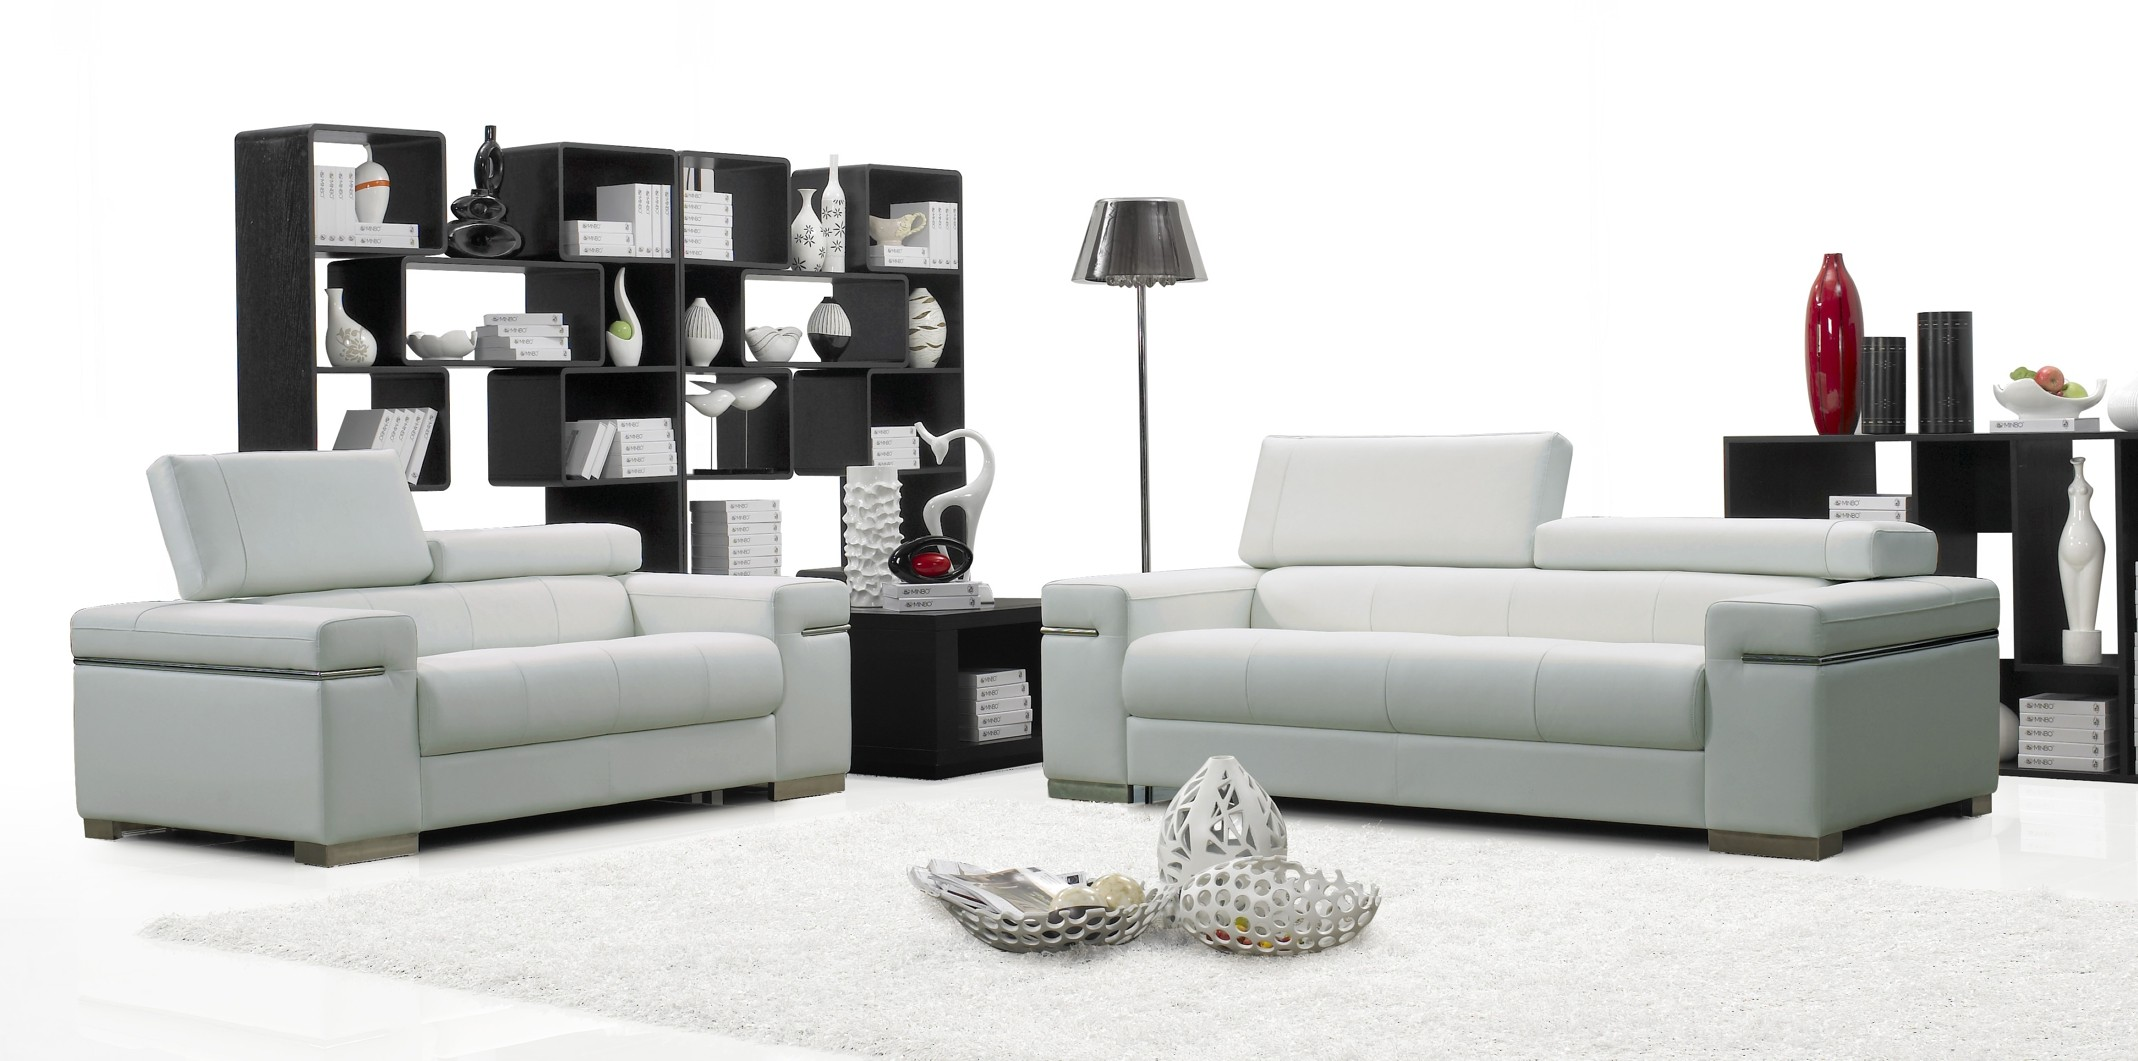 25 latest sofa set designs for living room furniture ideas - hgnv